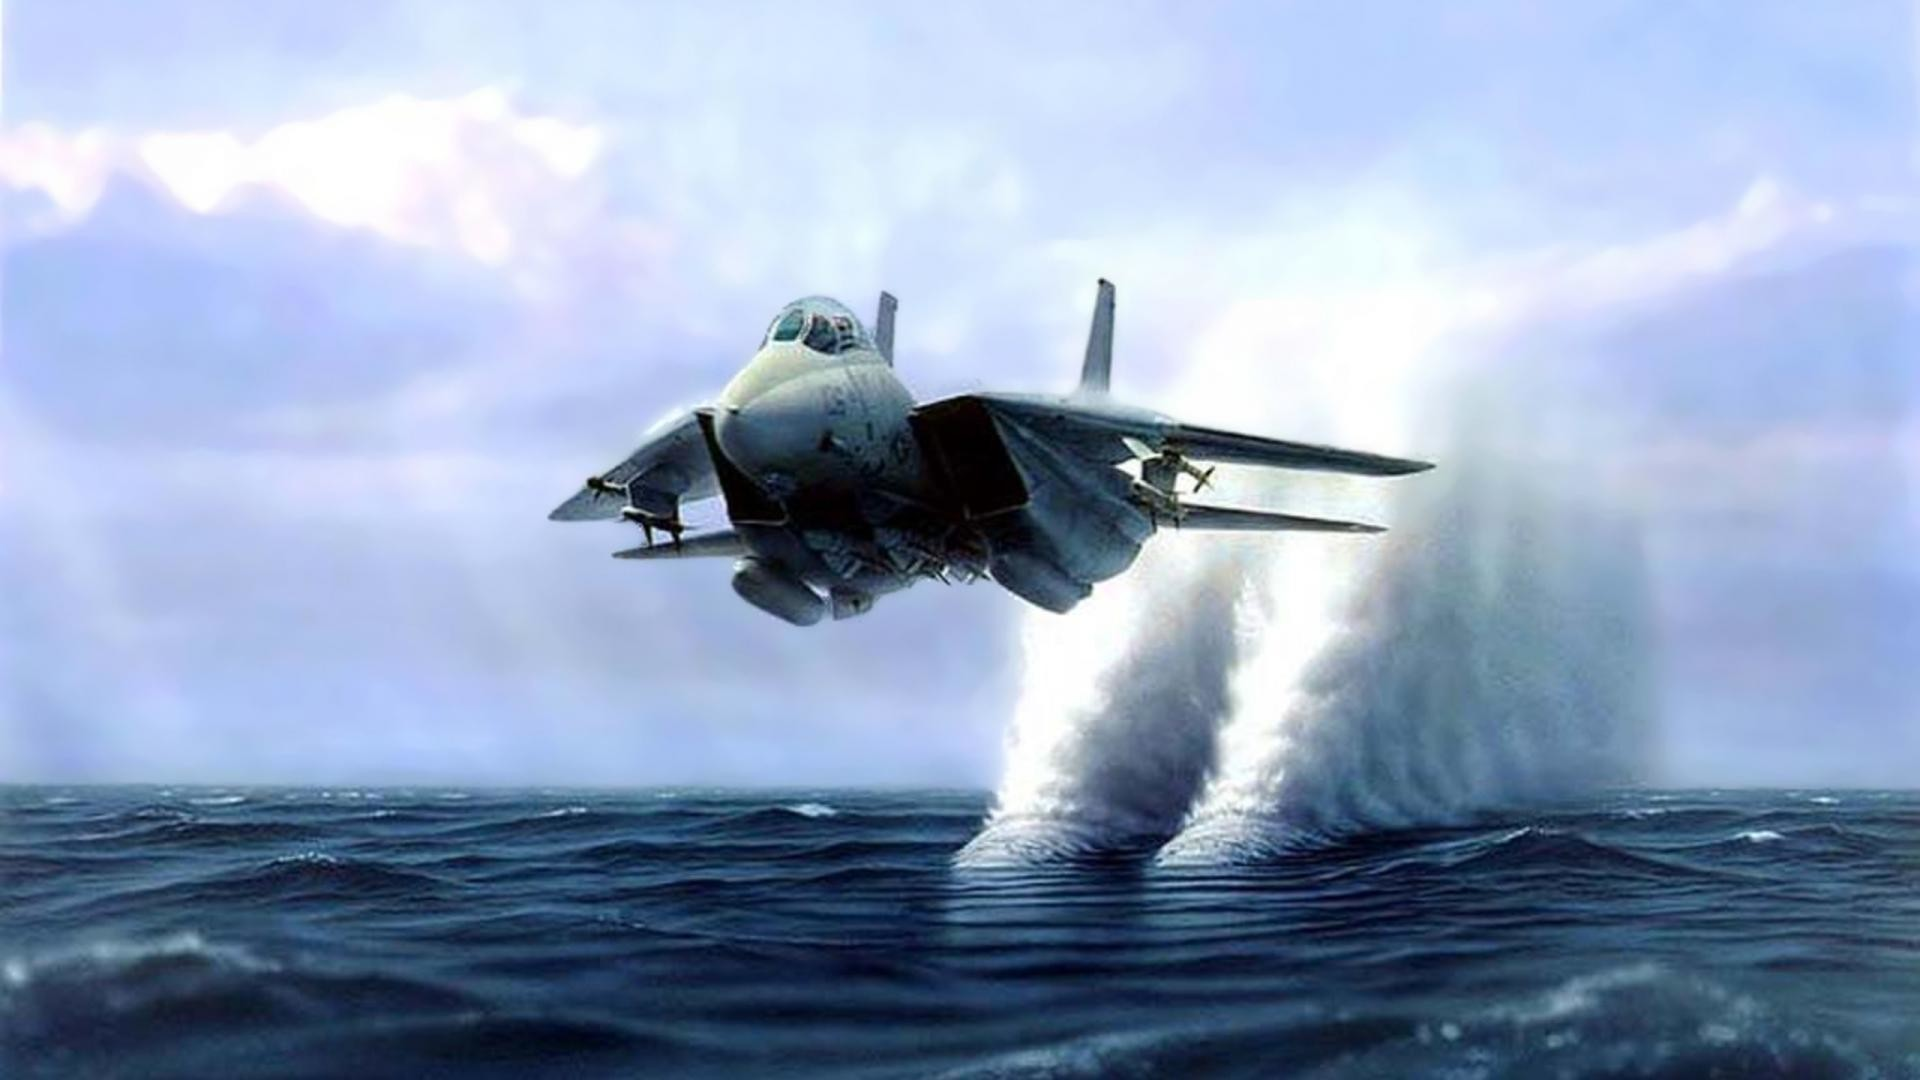 1920x1080 Download Fighter Jet Jets Aircraft Military Wallpaper  .